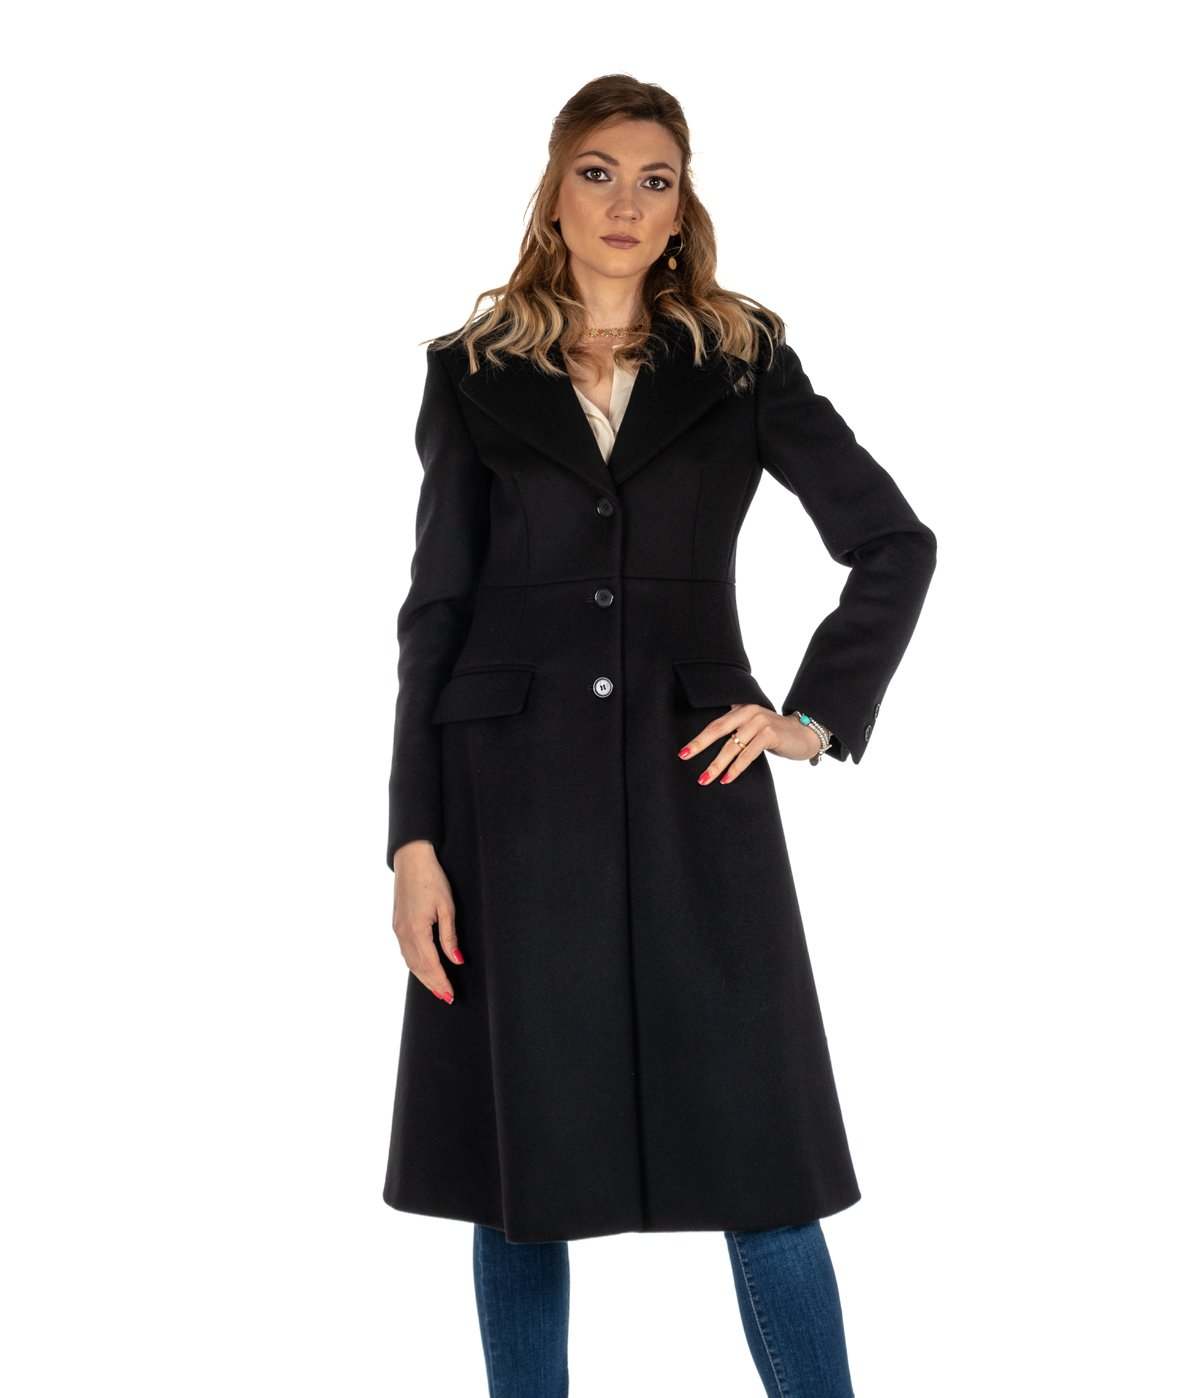 5391a166c773bc CAPPOTTO DONNA DONDUP NERO LUNGO SLIM FIT LANA DJ146 MADE IN ITALY ...